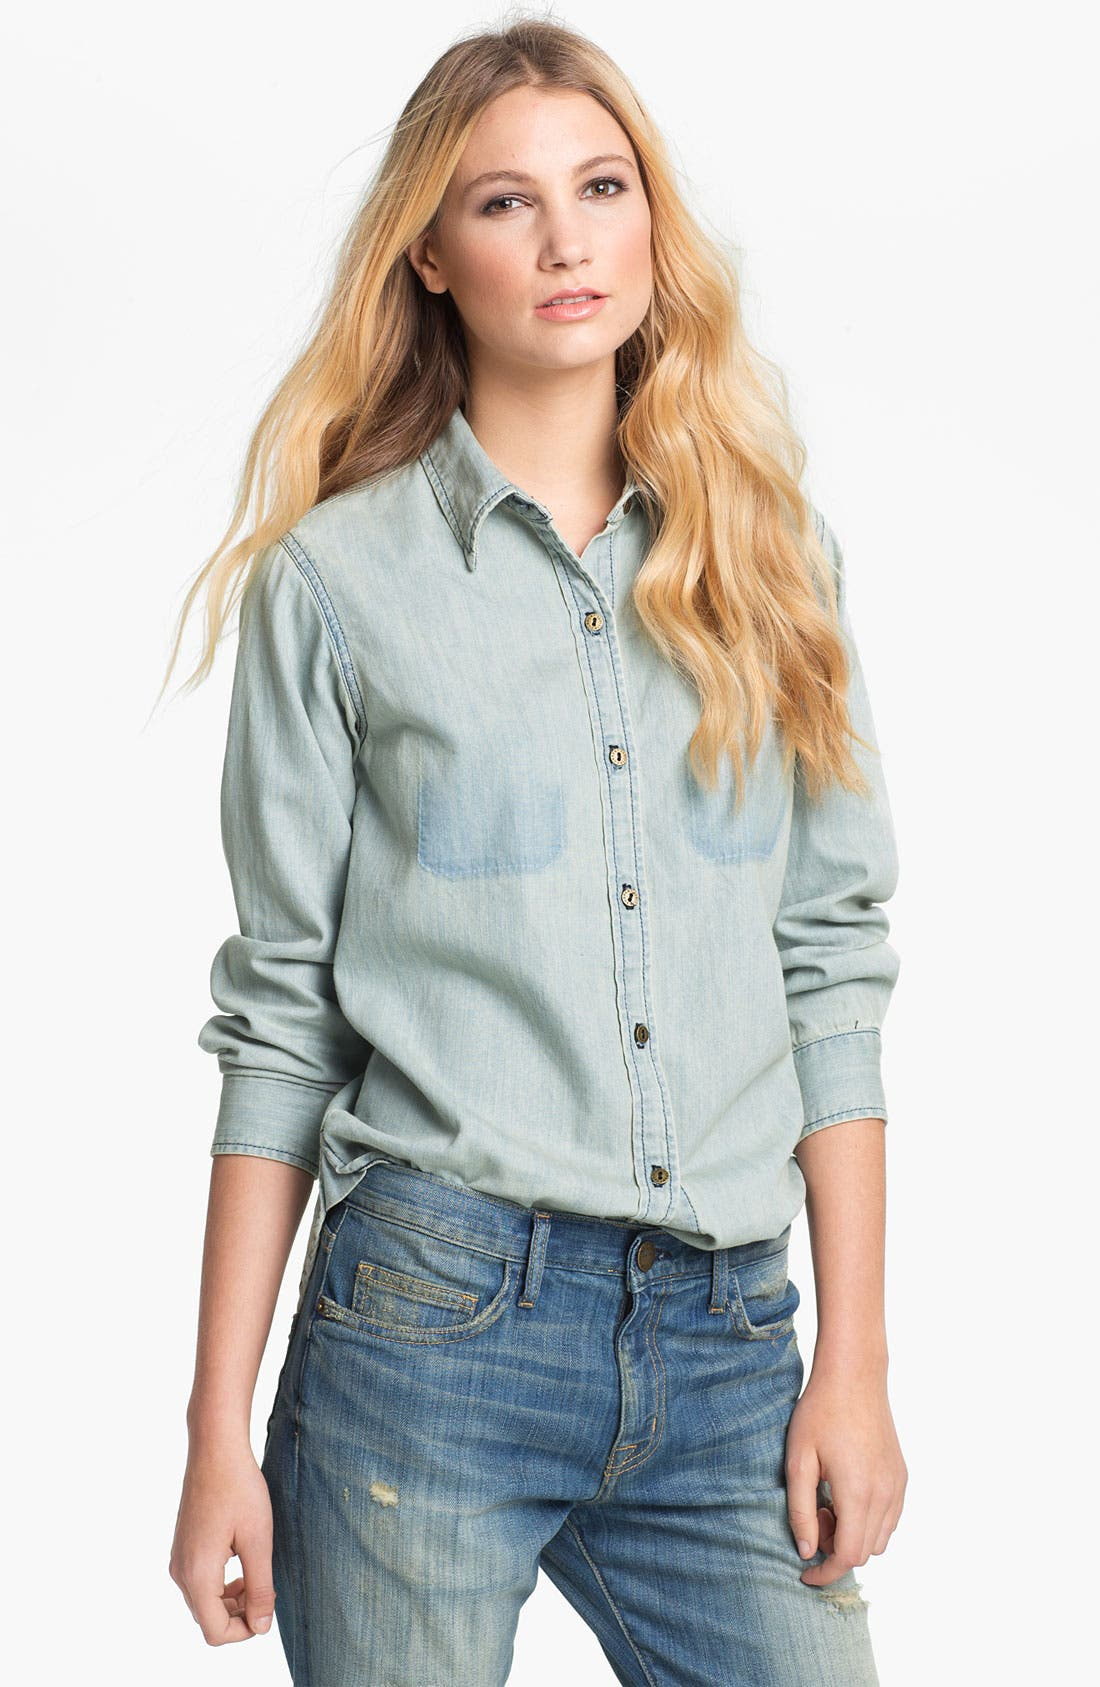 Alternate Image 1 Selected - Current/Elliott 'The Perfect' Vintage Denim Shirt